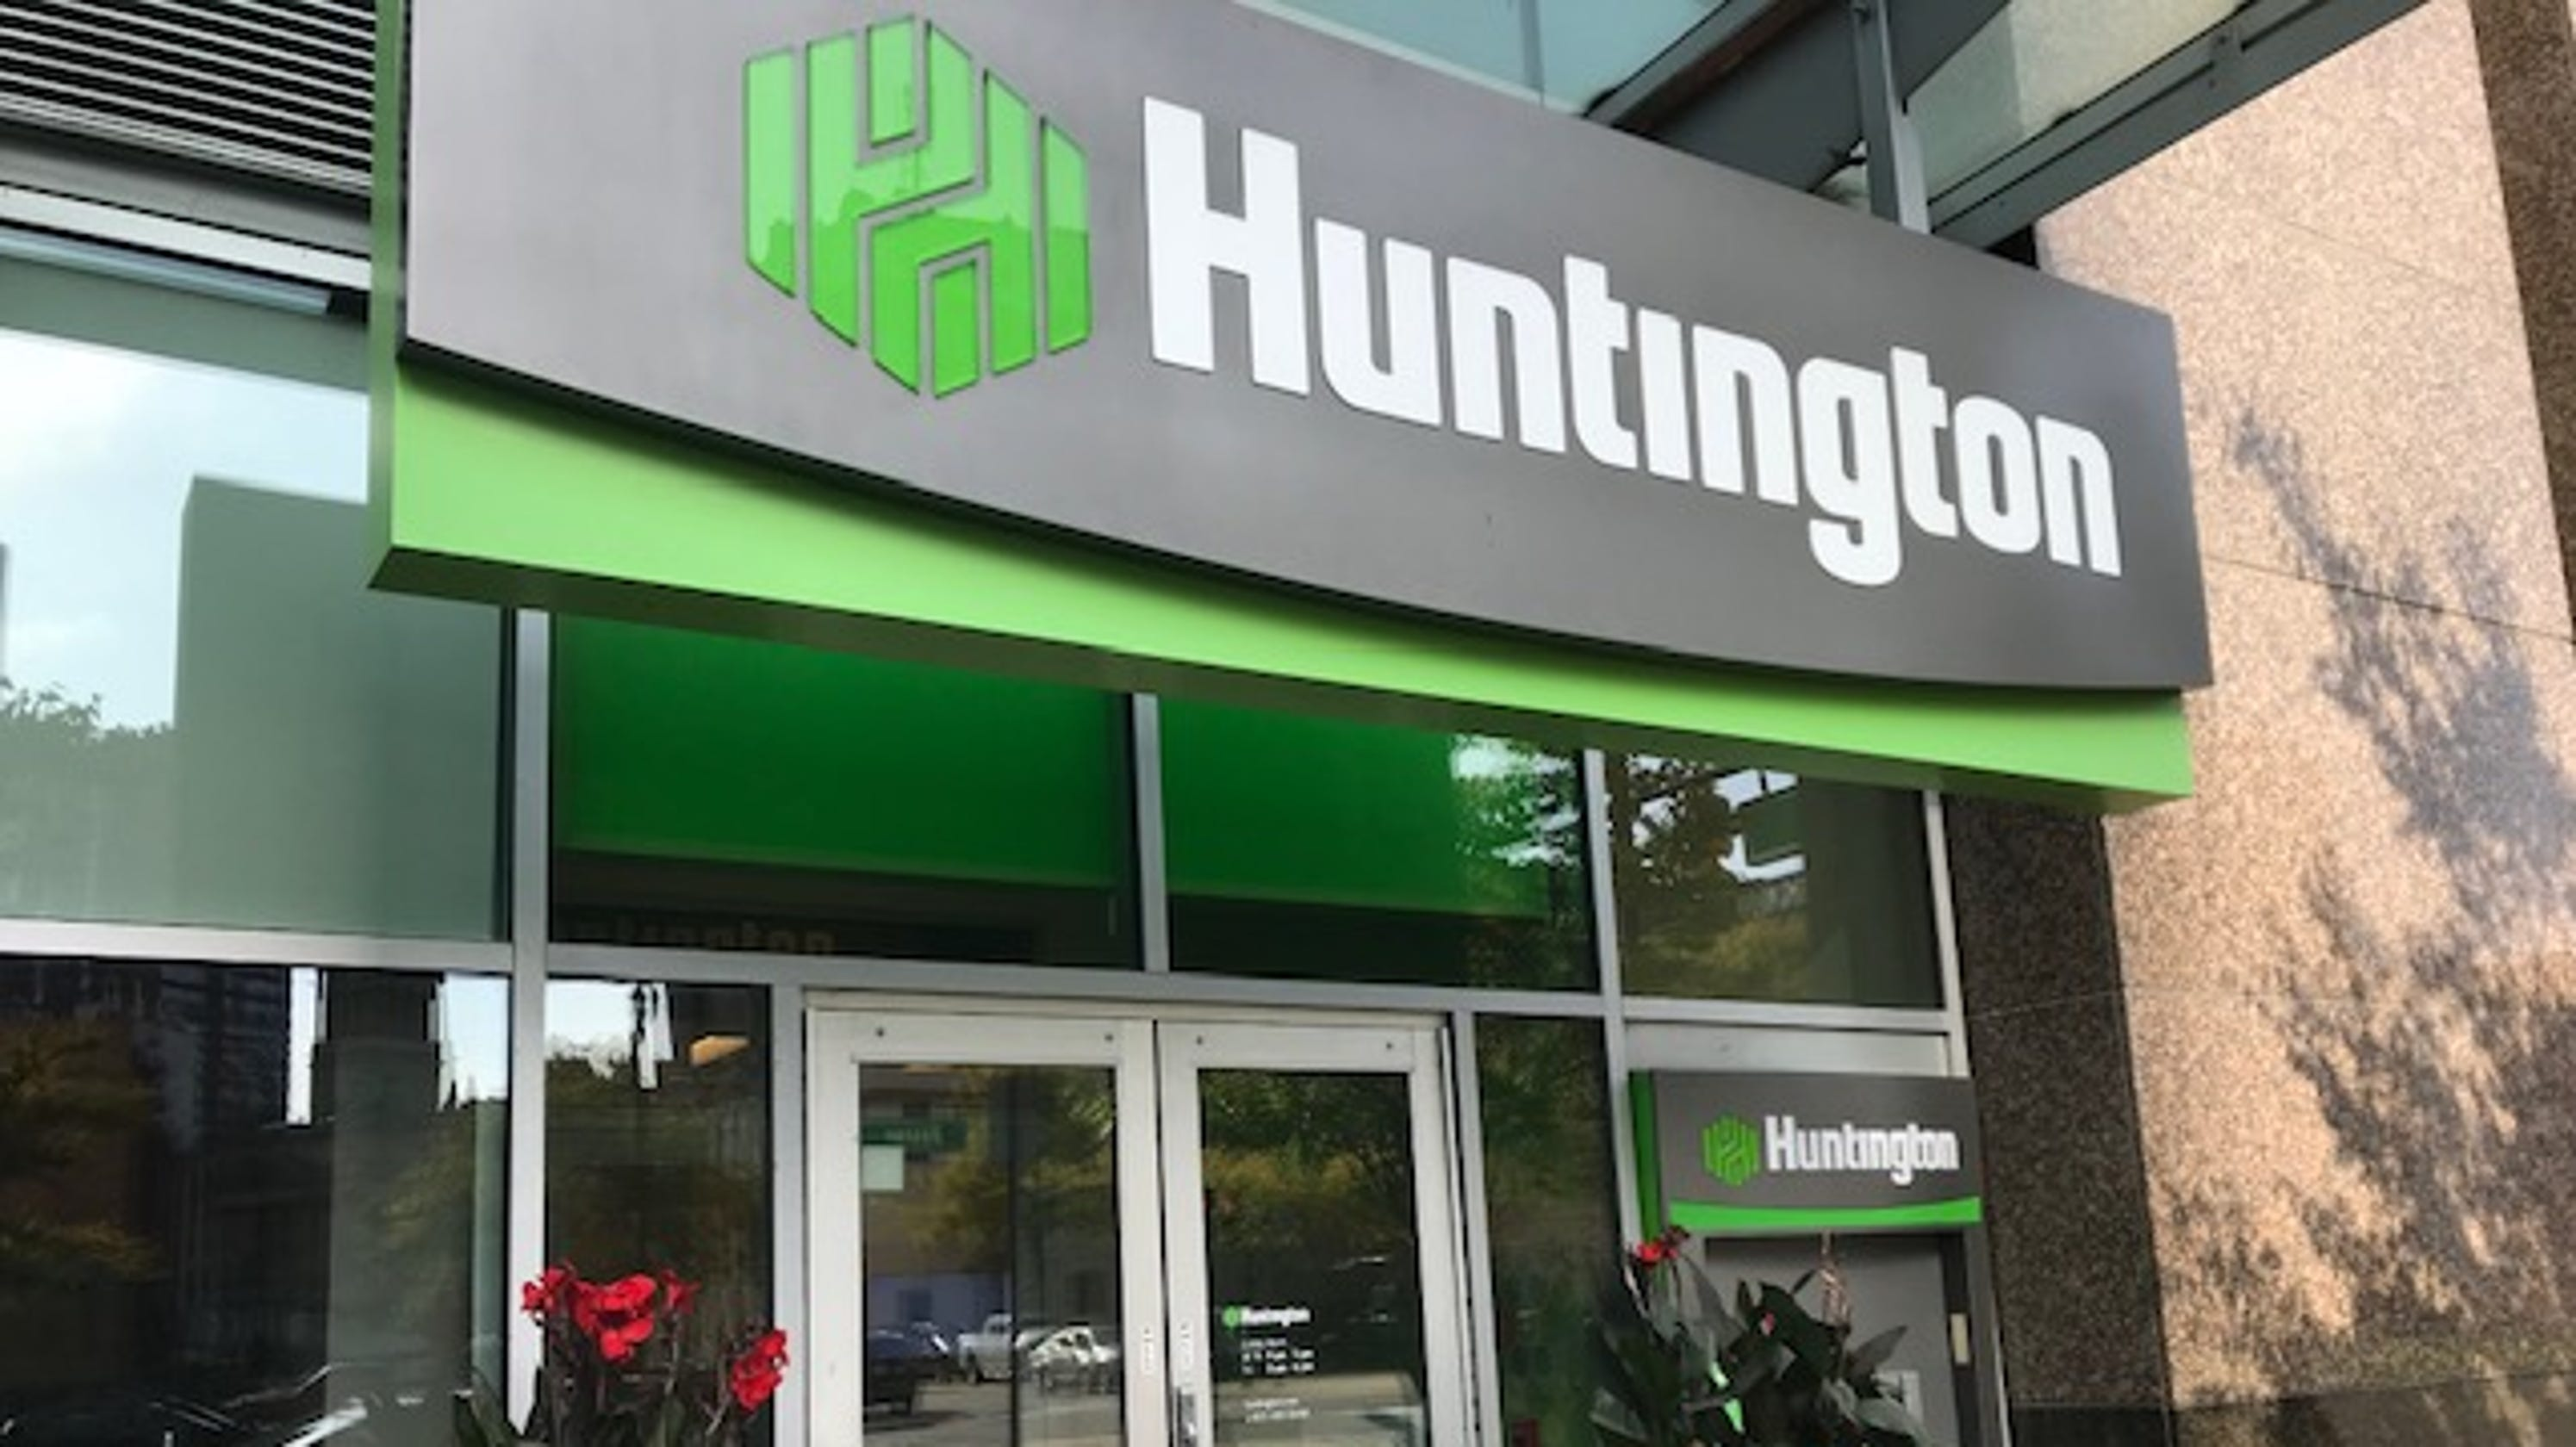 Huntington Bank: Police investigate after claims of money pulled